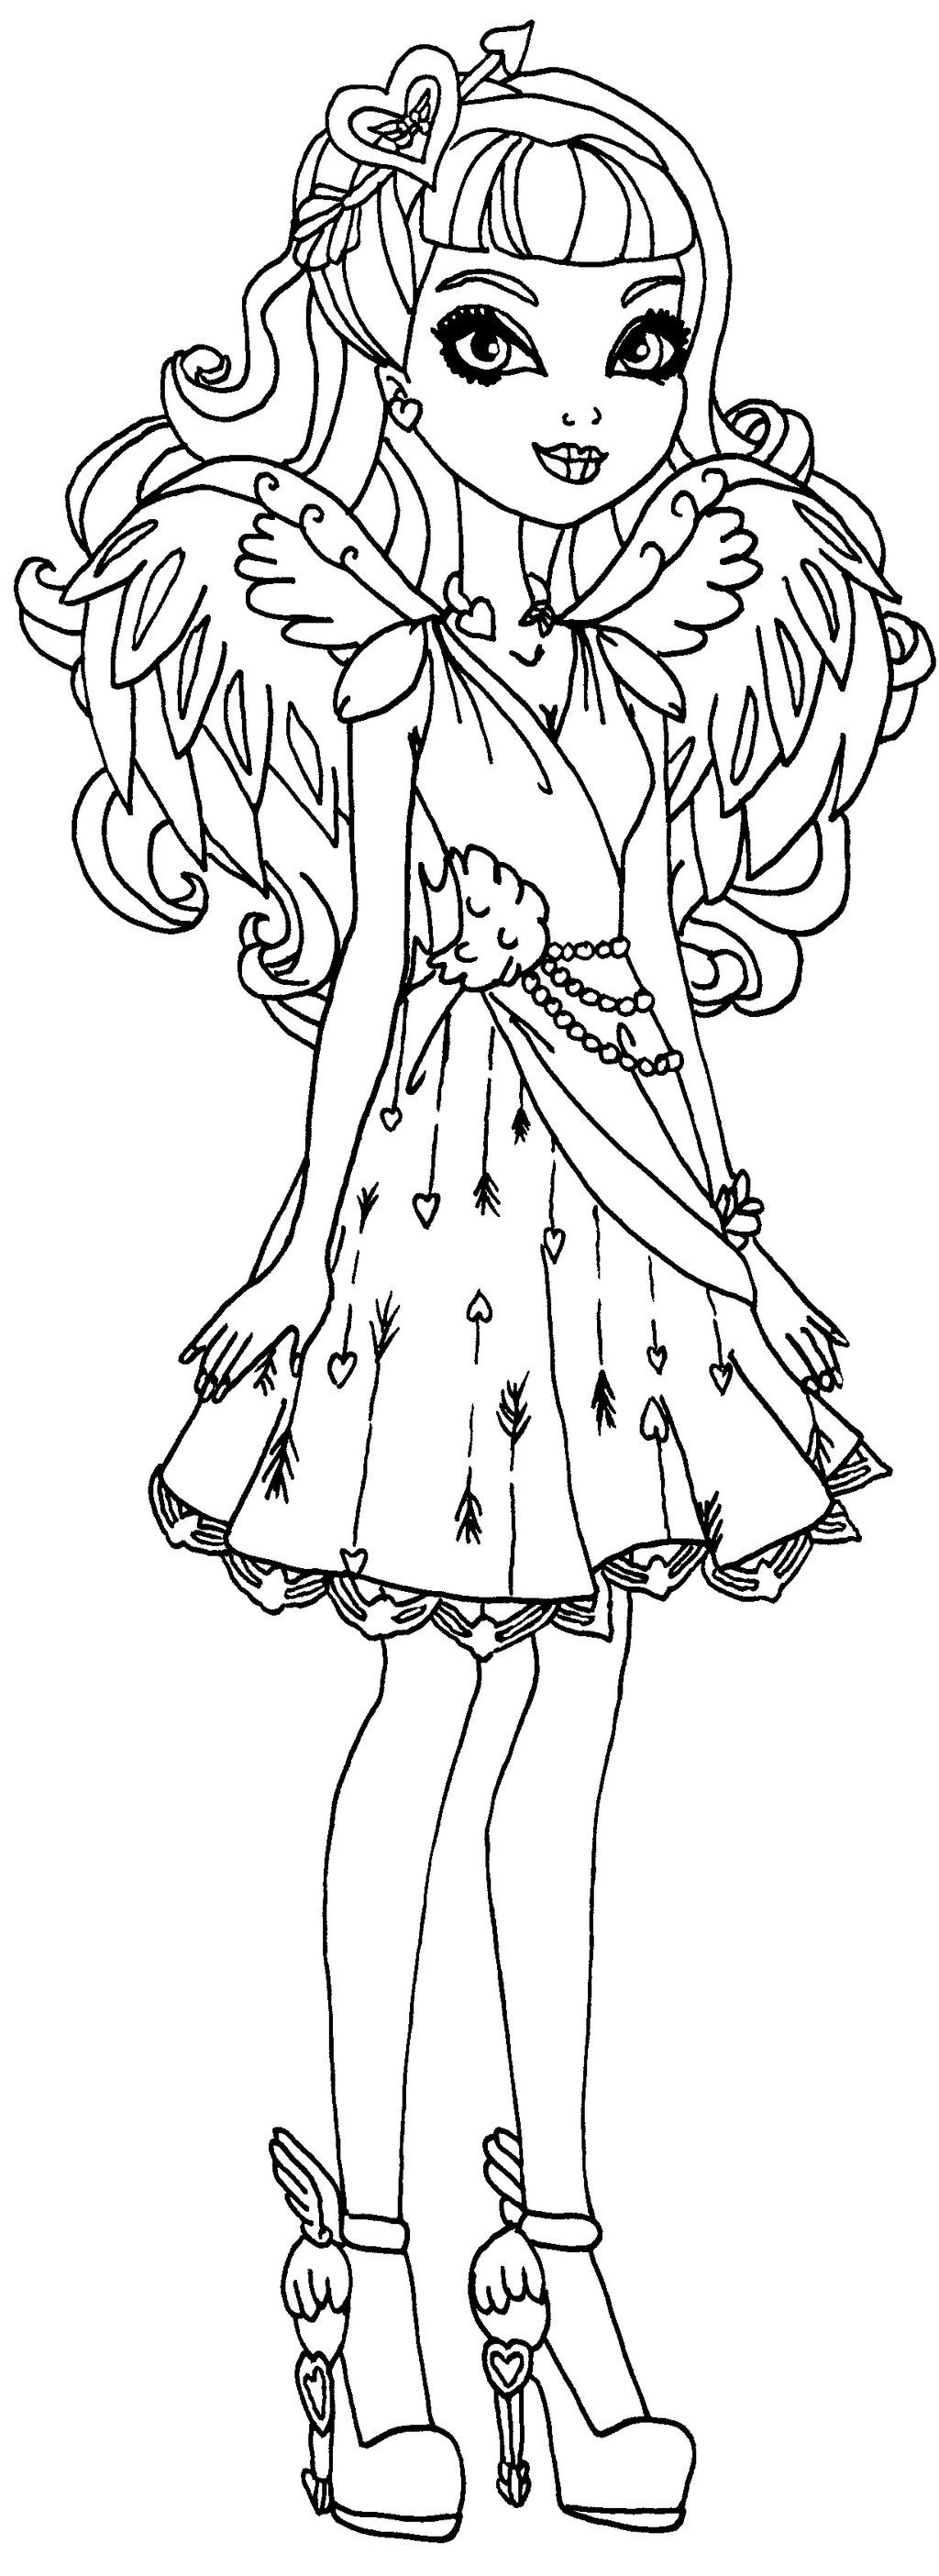 C A Cupid Ever After High Coloring Pages Cute Coloring